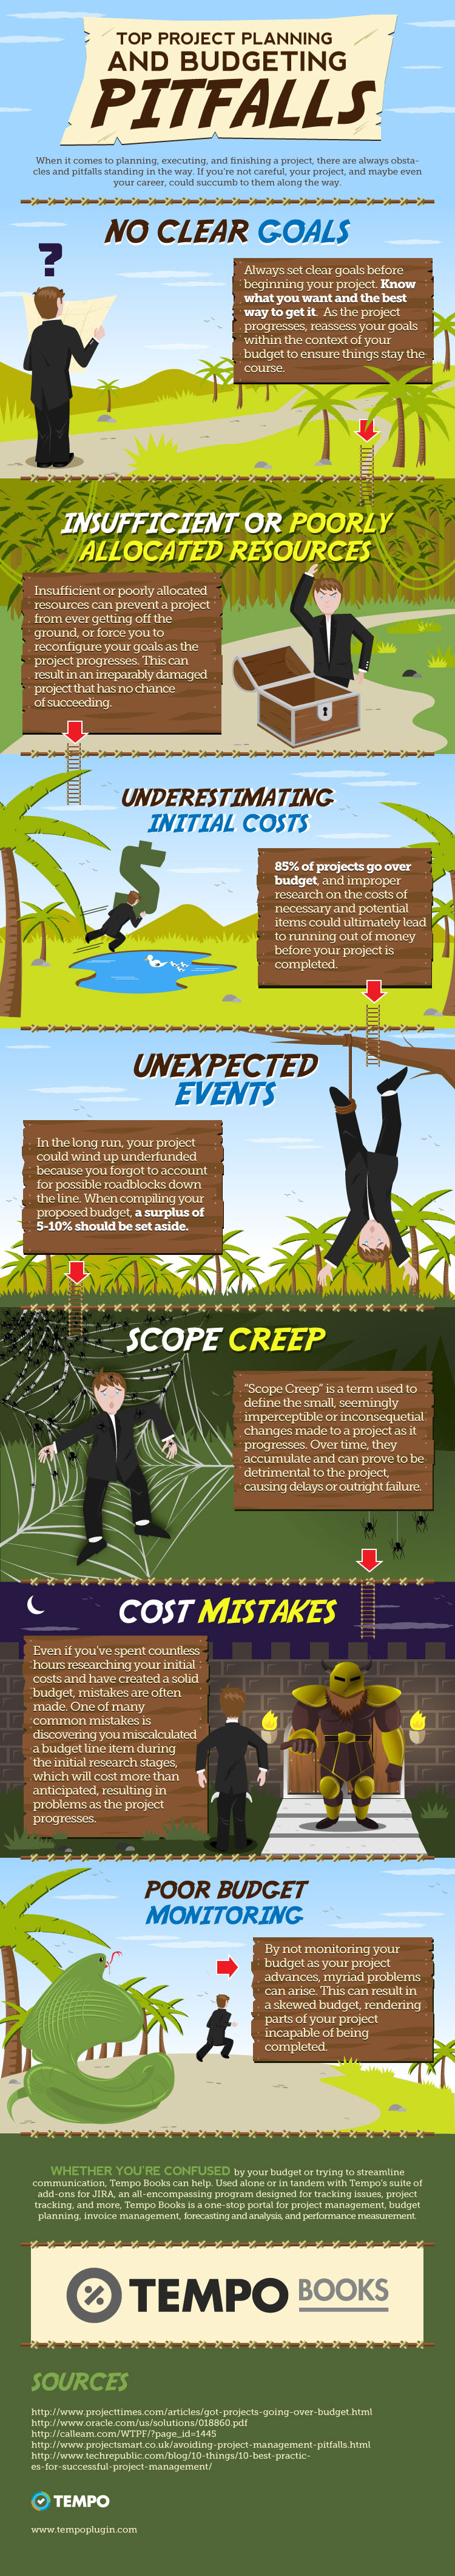 Infographic: Top Project Planning And Budgeting Pitfalls